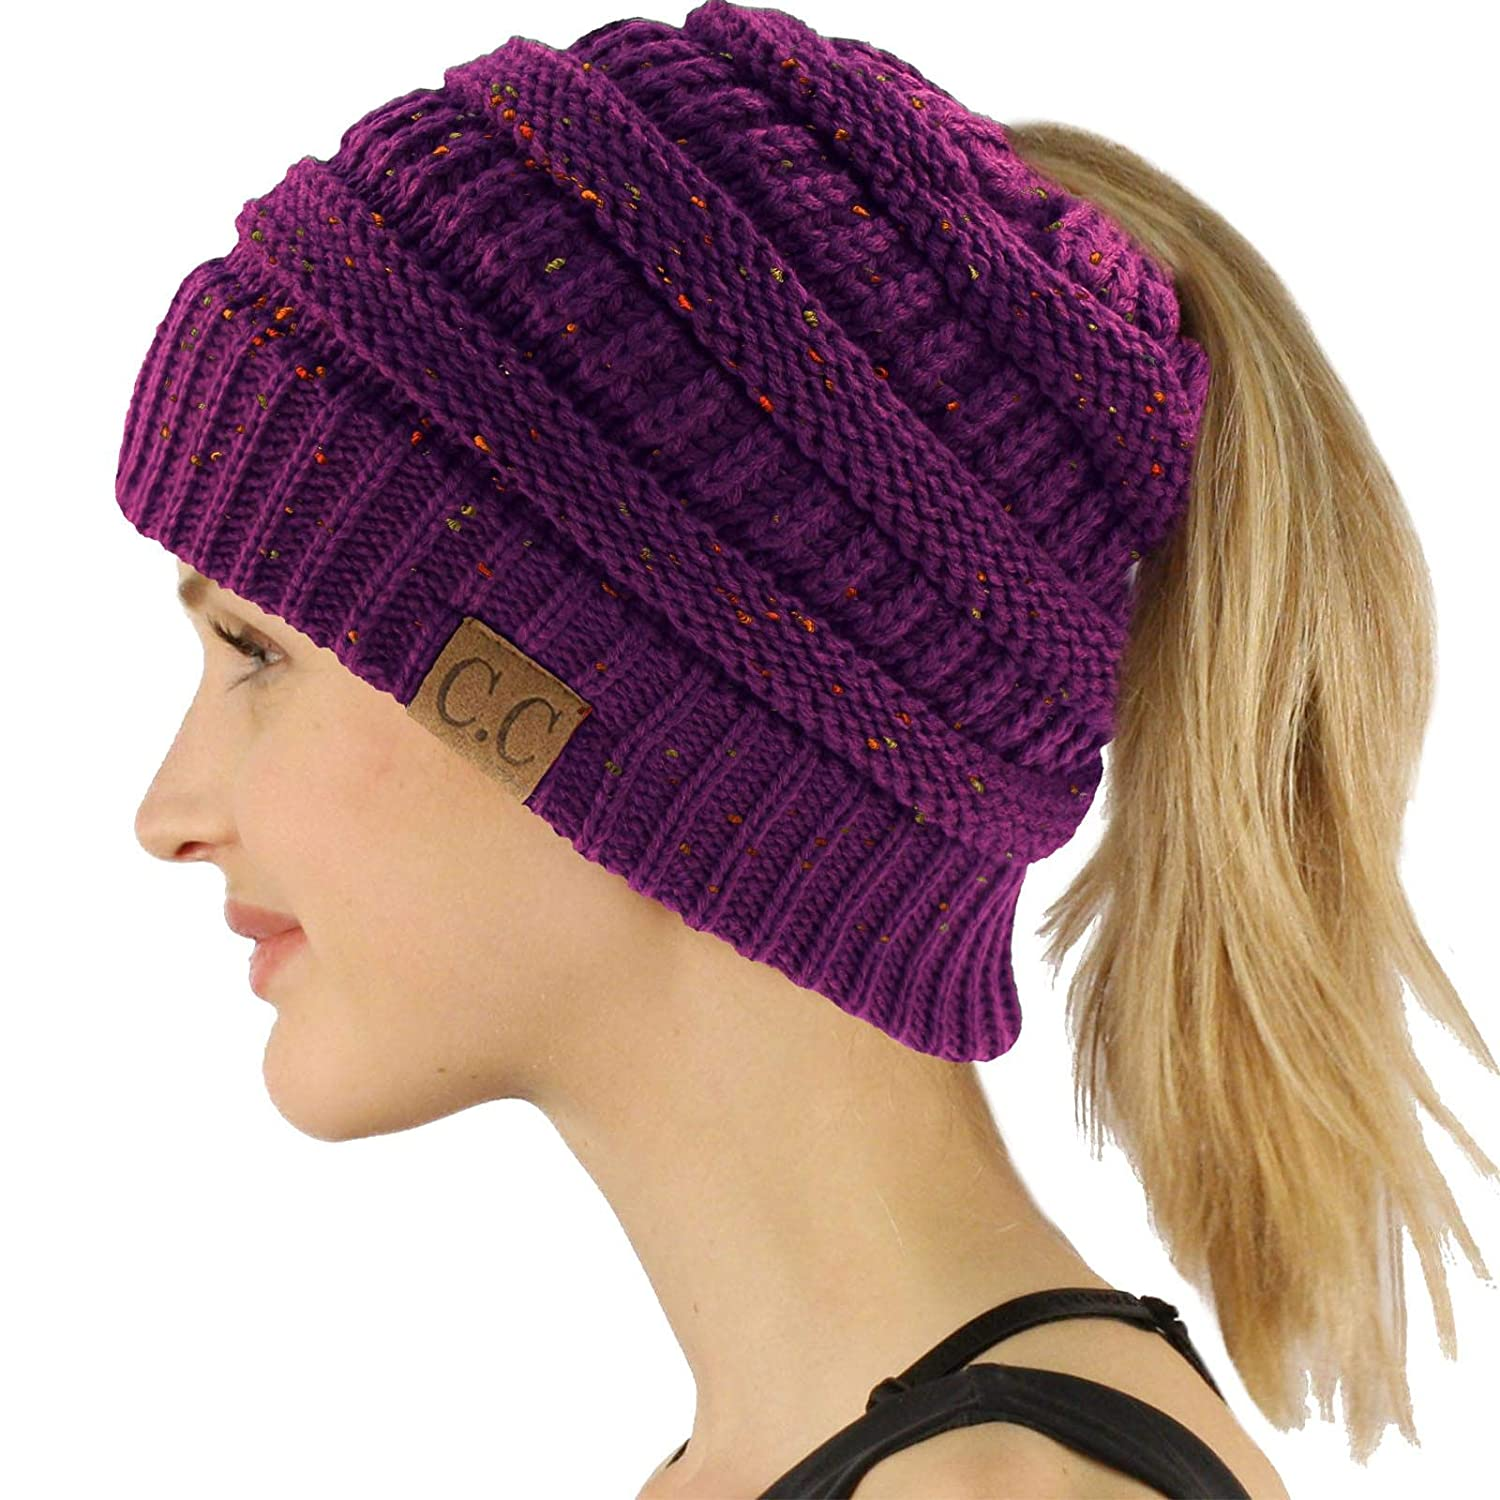 Confetti Purple Ponytail Messy Bun BeanieTail Soft Winter Knit Stretchy Beanie Hat Cap